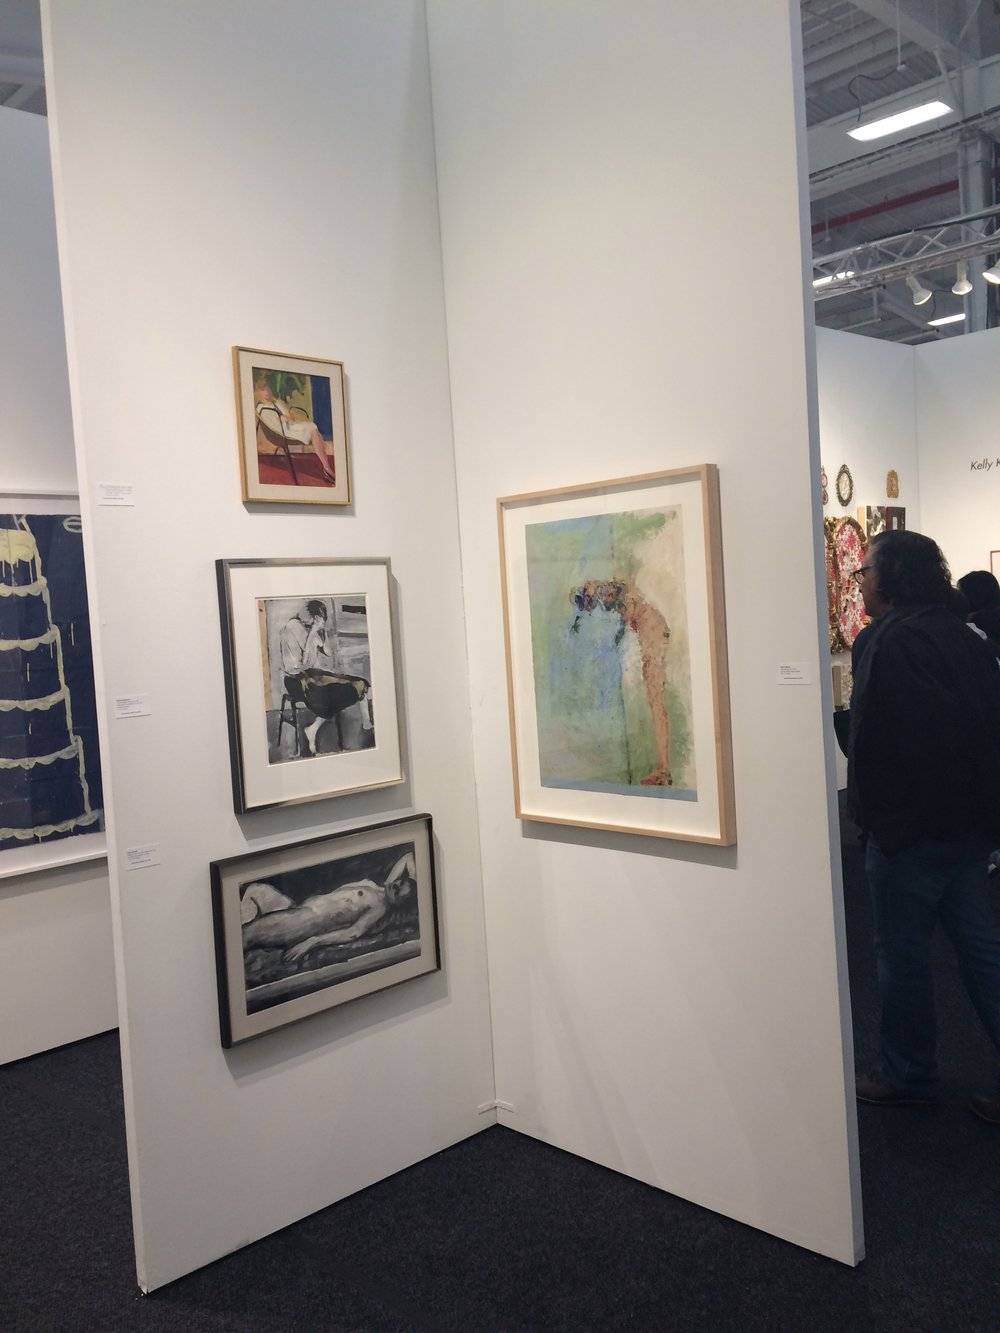 Art On PaperMARCH 2 - 52017 - Elins Eagles-Smith Galleryexhibiting atArt on Paper located at downtown Manhattan's Pier 36 March 2 - 5,2017.An ArtMRKT production,Art on Paper's medium-driven focus lends itself to significant projects - unique moments that have set the fair apart and established a new and important destination for the arts in New York City.